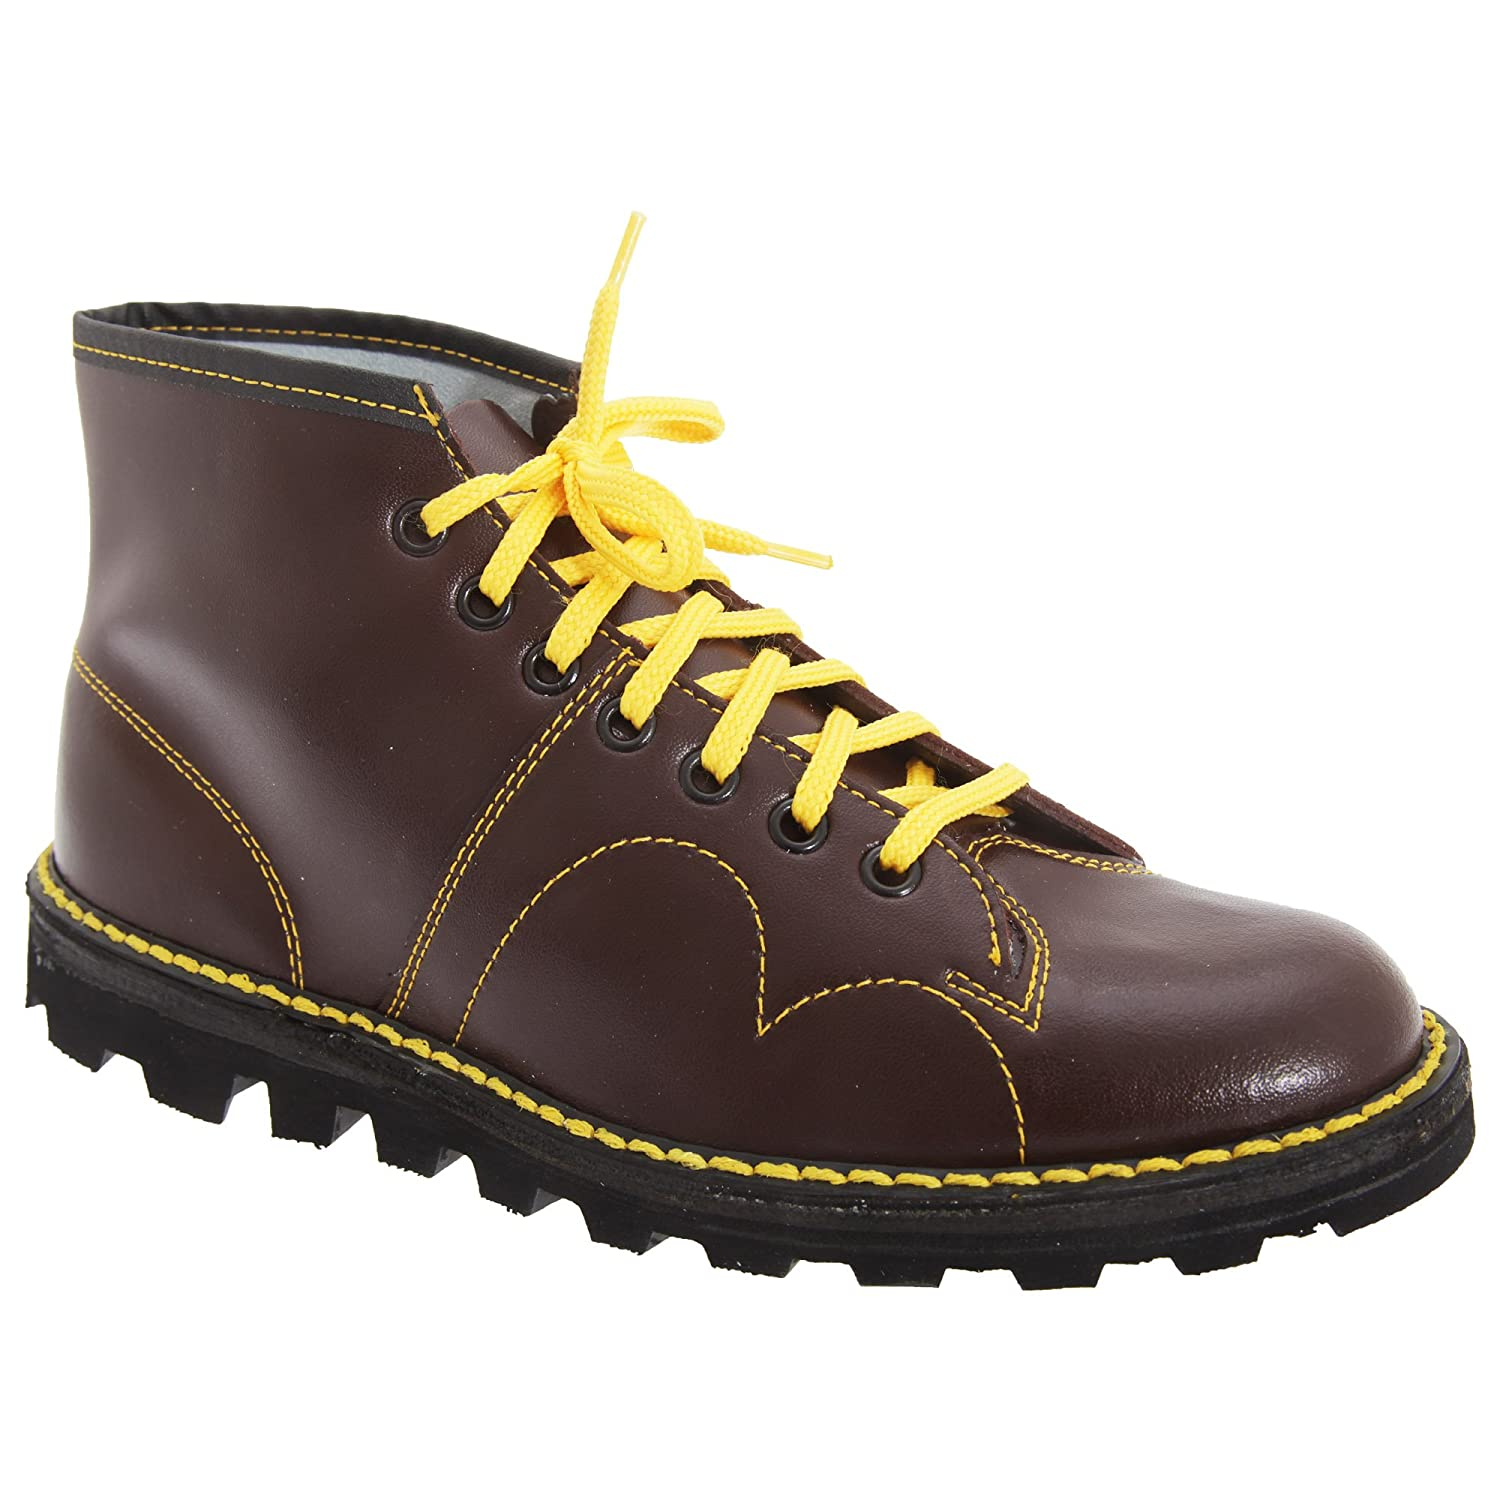 8b507b28d005e Amazon.com | Grafters Mens Original Coated Leather Retro Monkey Boots |  Boots